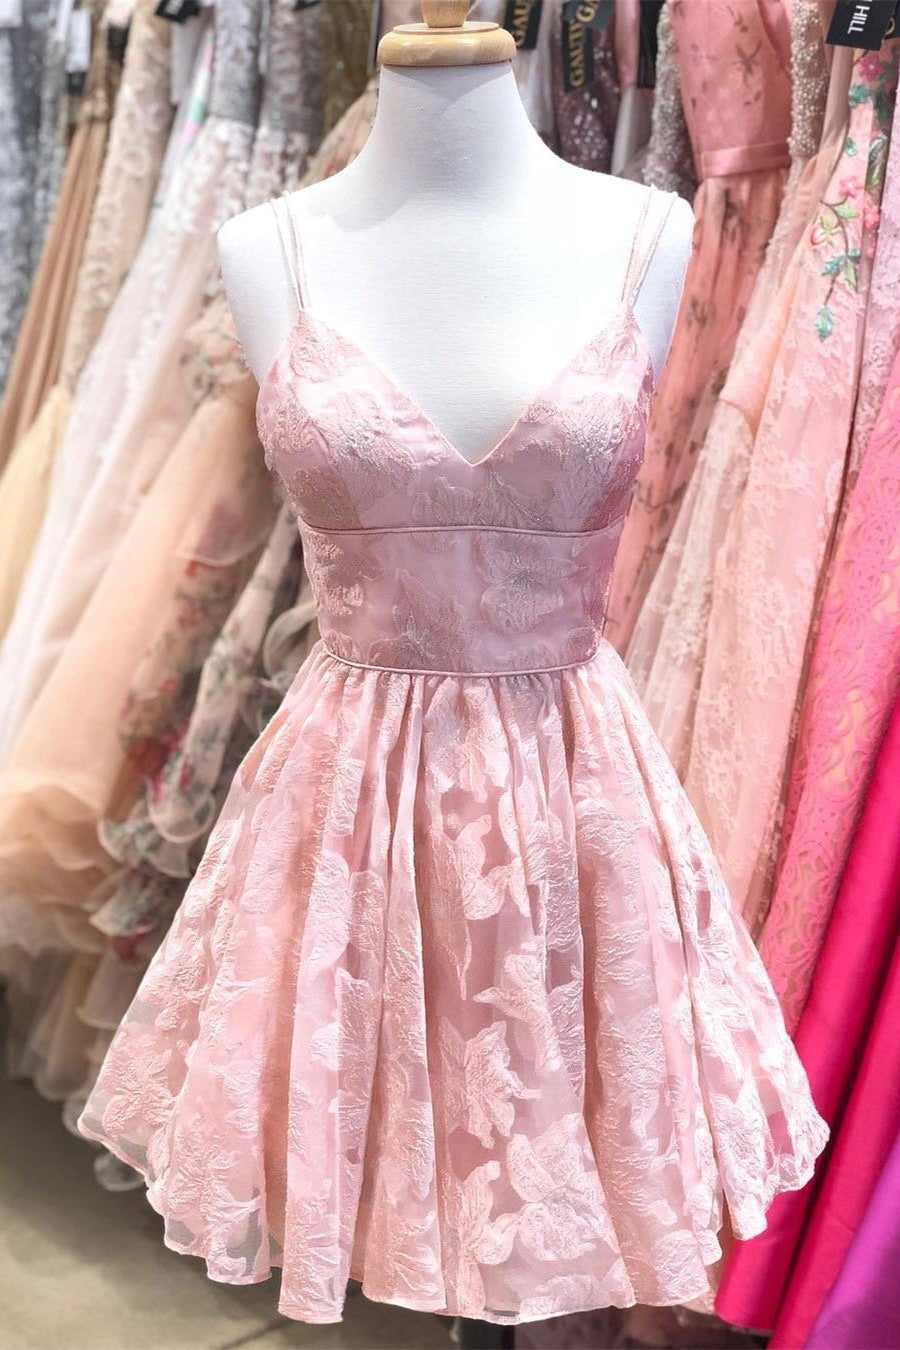 Spaghetti Straps Short Cute Pink Cocktail Dresses Homecoming Dresses For Teens Z2040